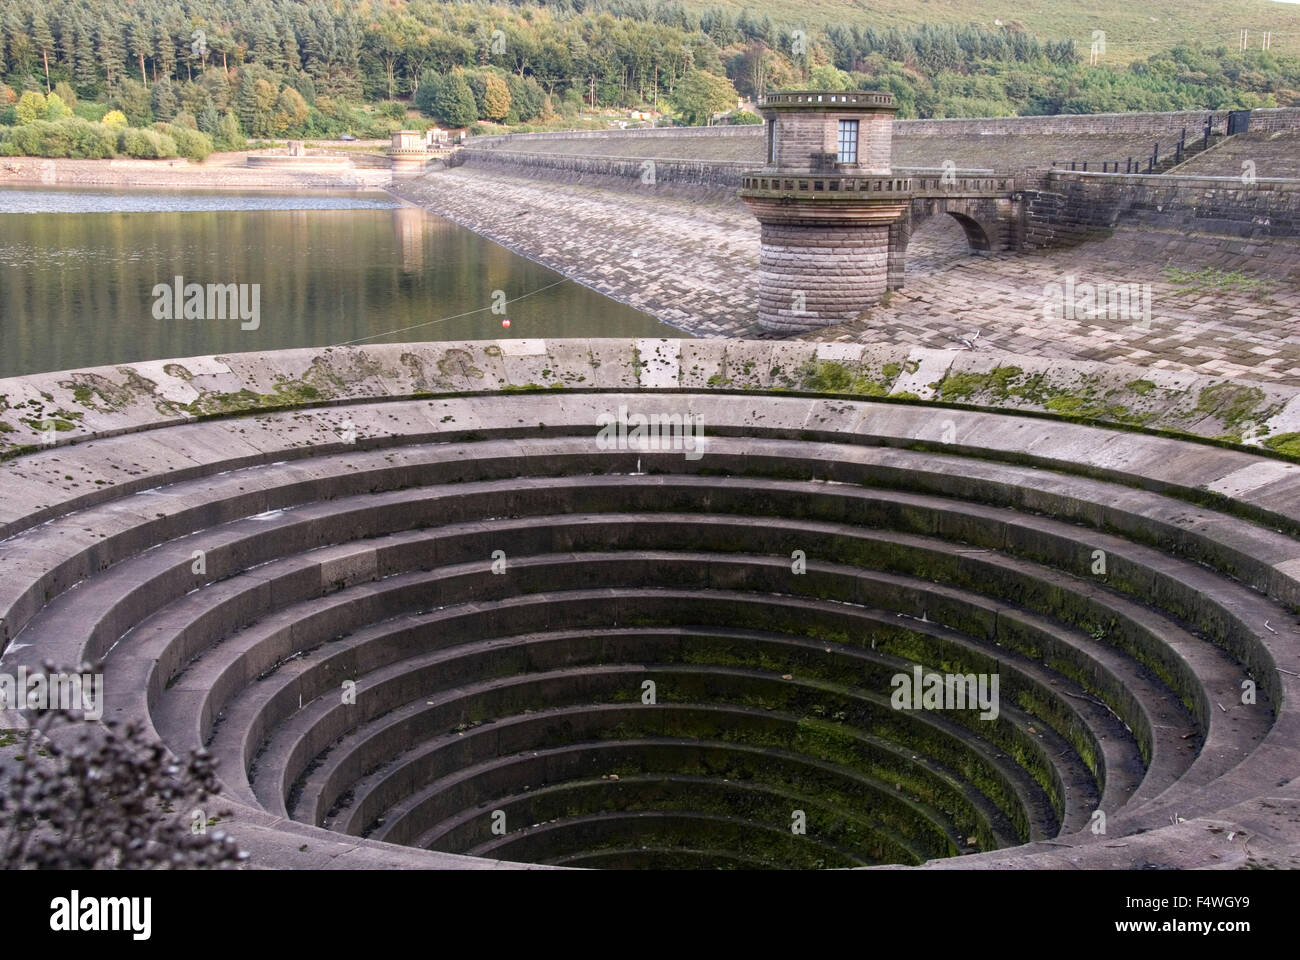 DERBYSHIRE UK - 06 Oct : Ladybower reservoir bellmouth overflow (or plug hole) and draw off tower on 06 Oct 2013 - Stock Image